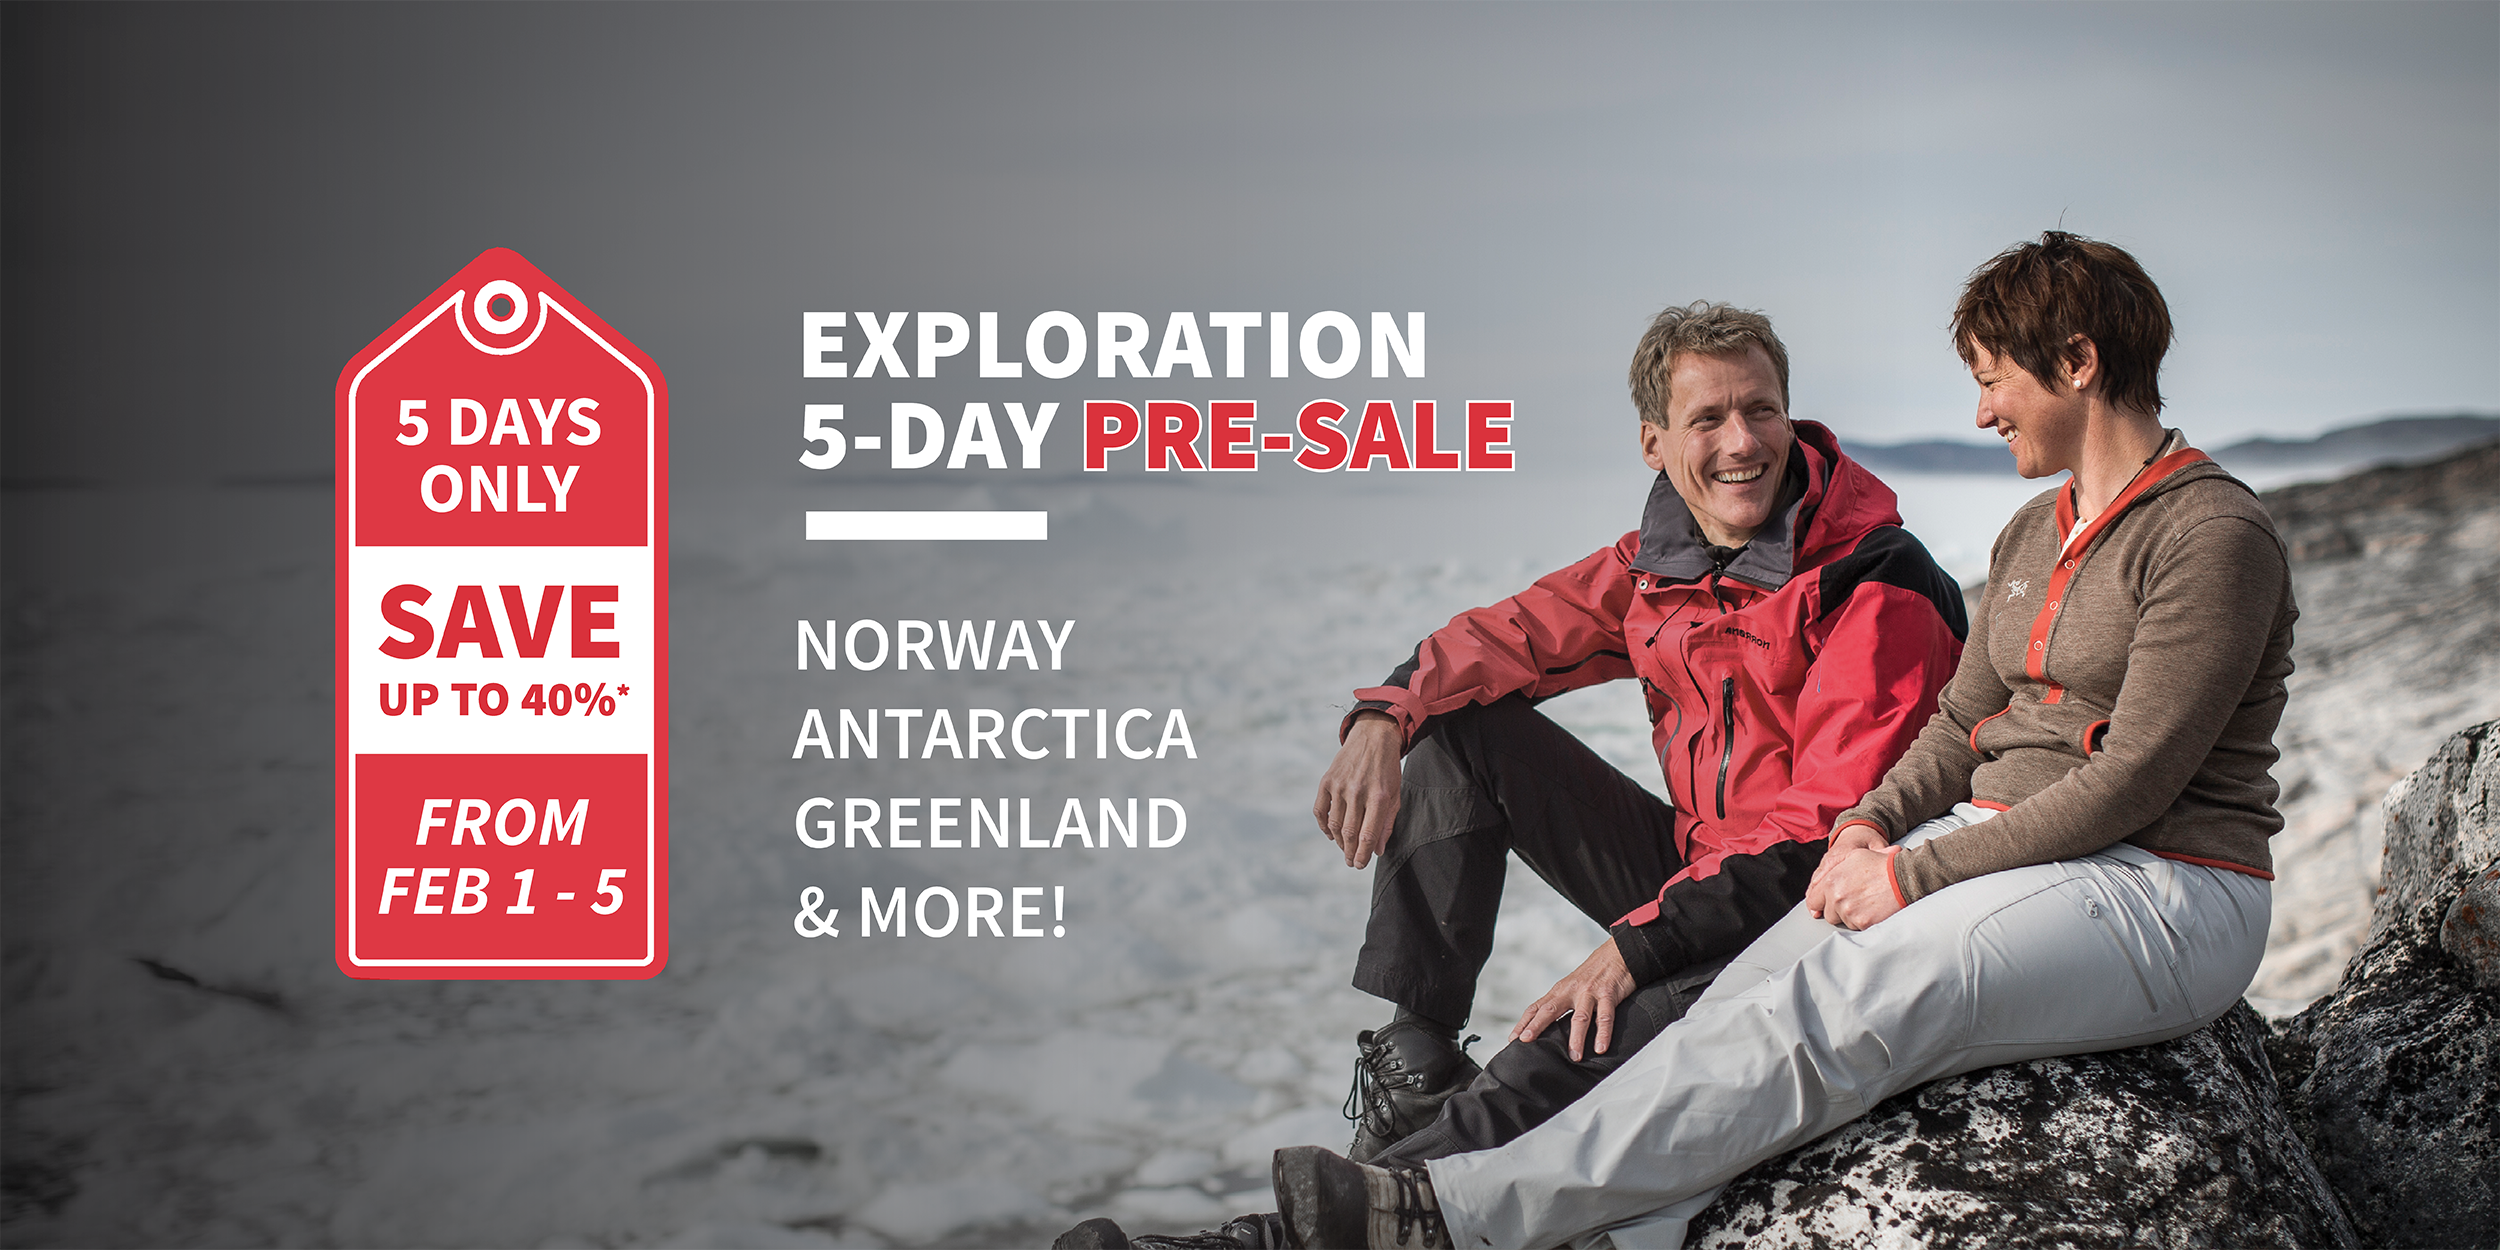 Design poster urging mountaineers preserve pristine glory mountainsides - Hurtigruten S Exploration 5 Day Sale Is Starting Soon Our Special Offers Pinterest Norway